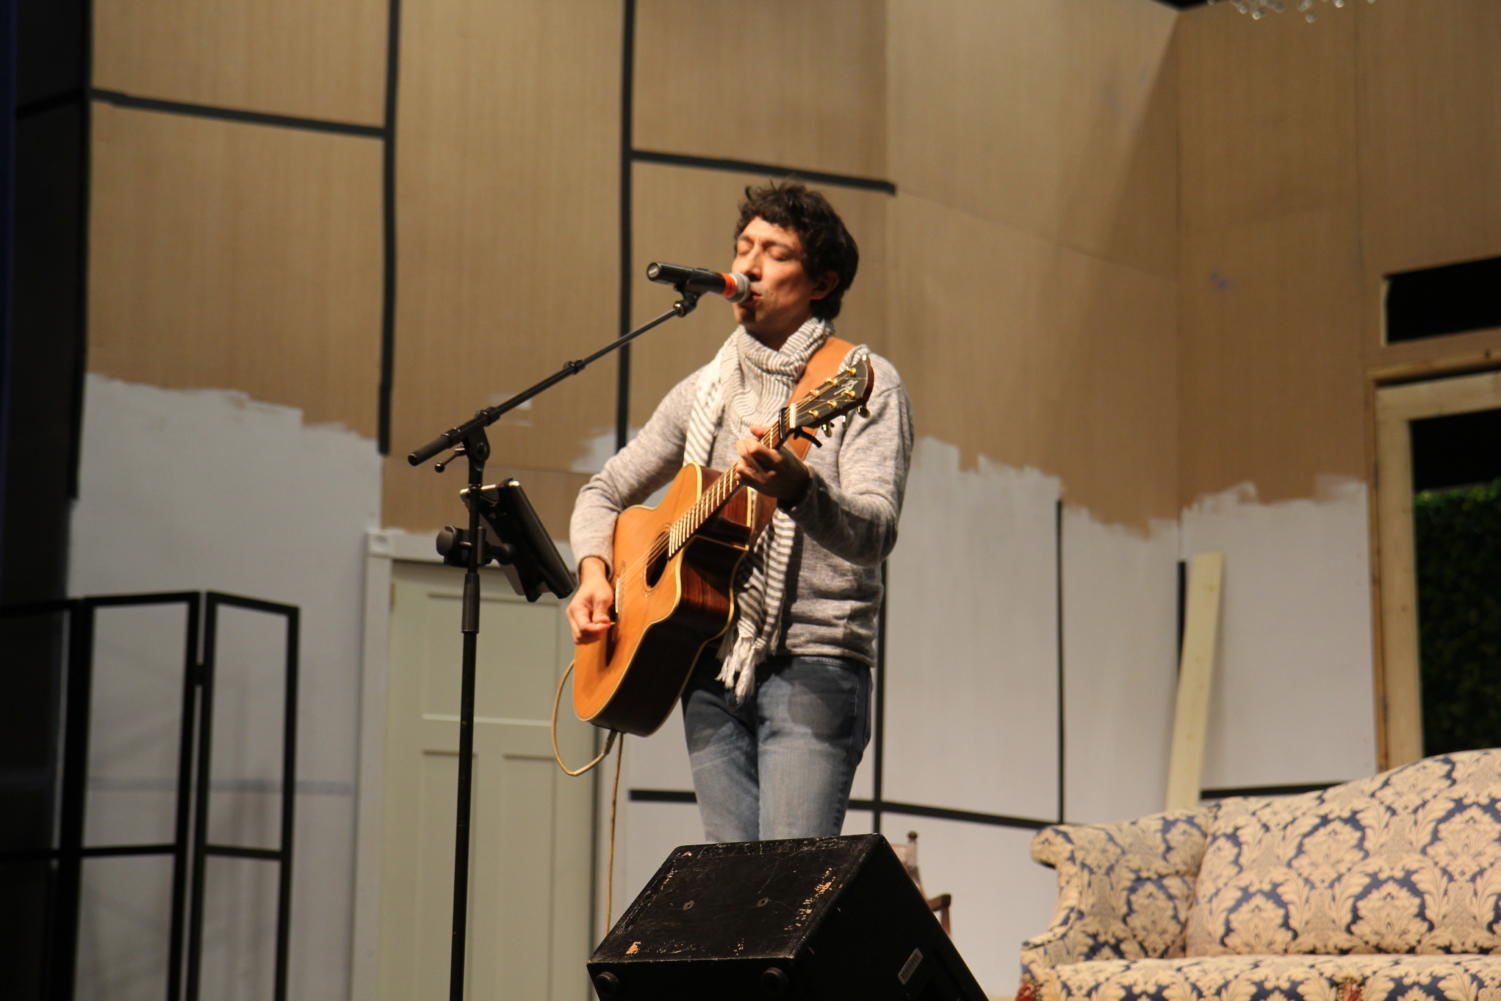 Photo+Gallery+and+Interview%3A+Javier+Mendoza+Concert